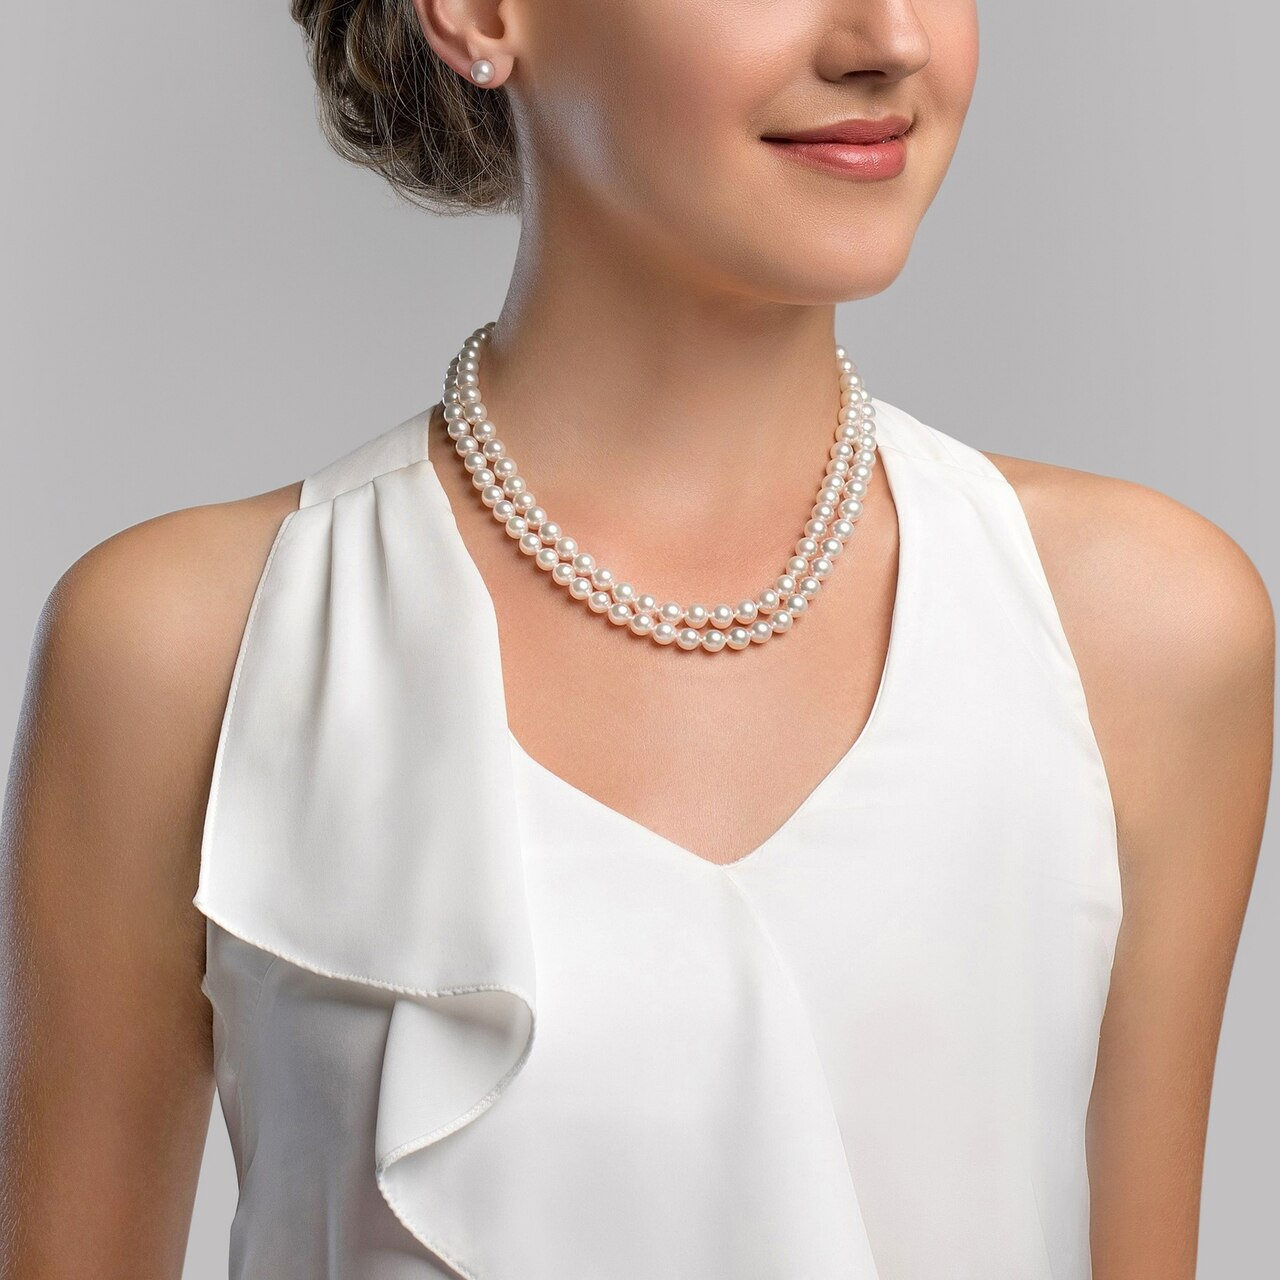 This gorgeous necklace features 9.0-10.0mm white Freshwater pearls, handpicked for their luminous luster